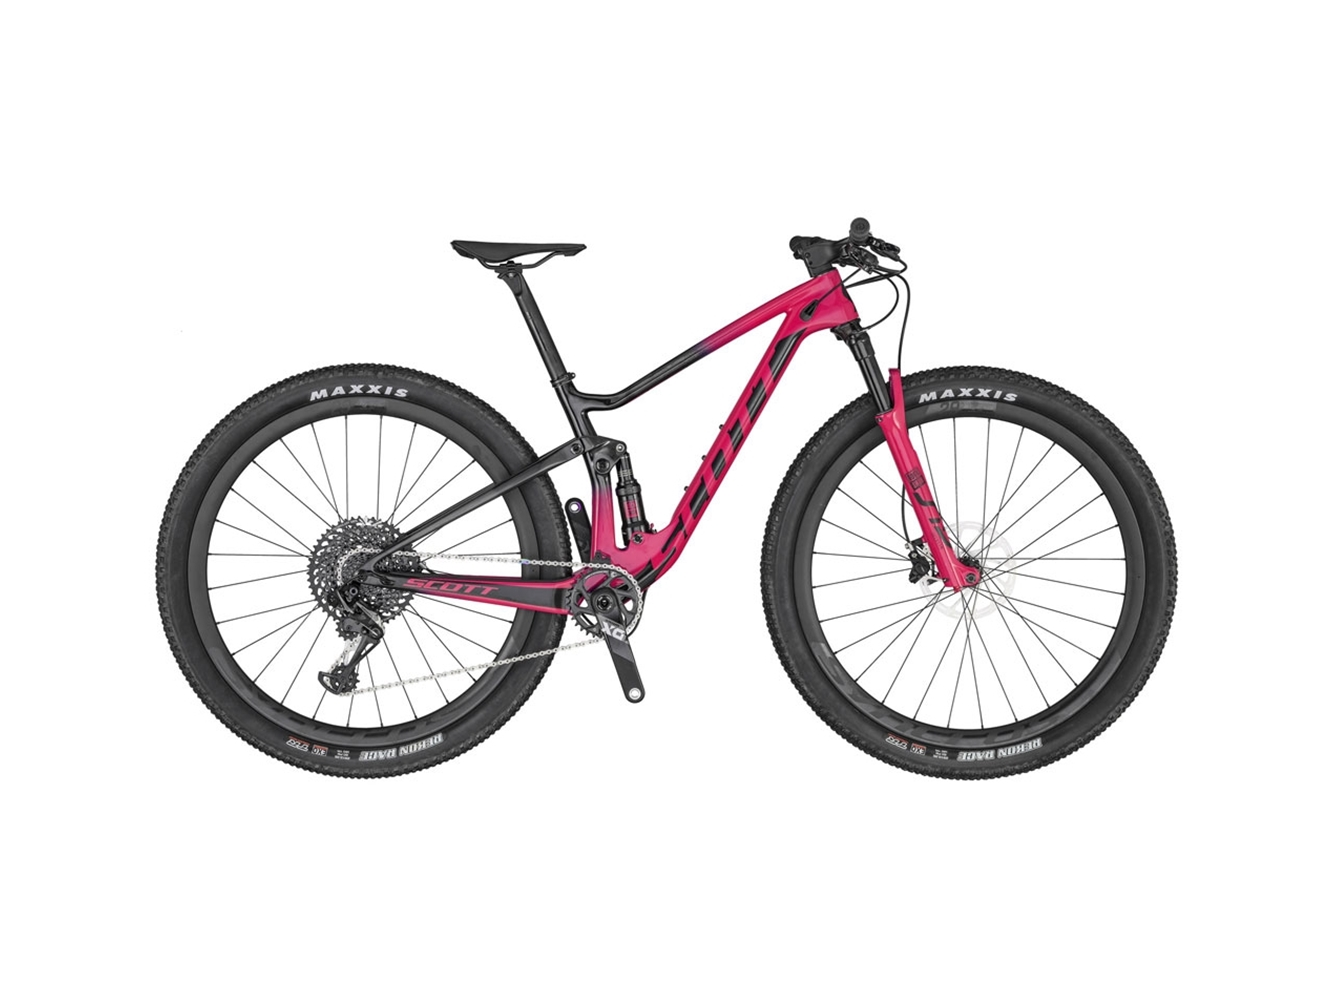 Scott Contessa Spark Rc 900 2020 S